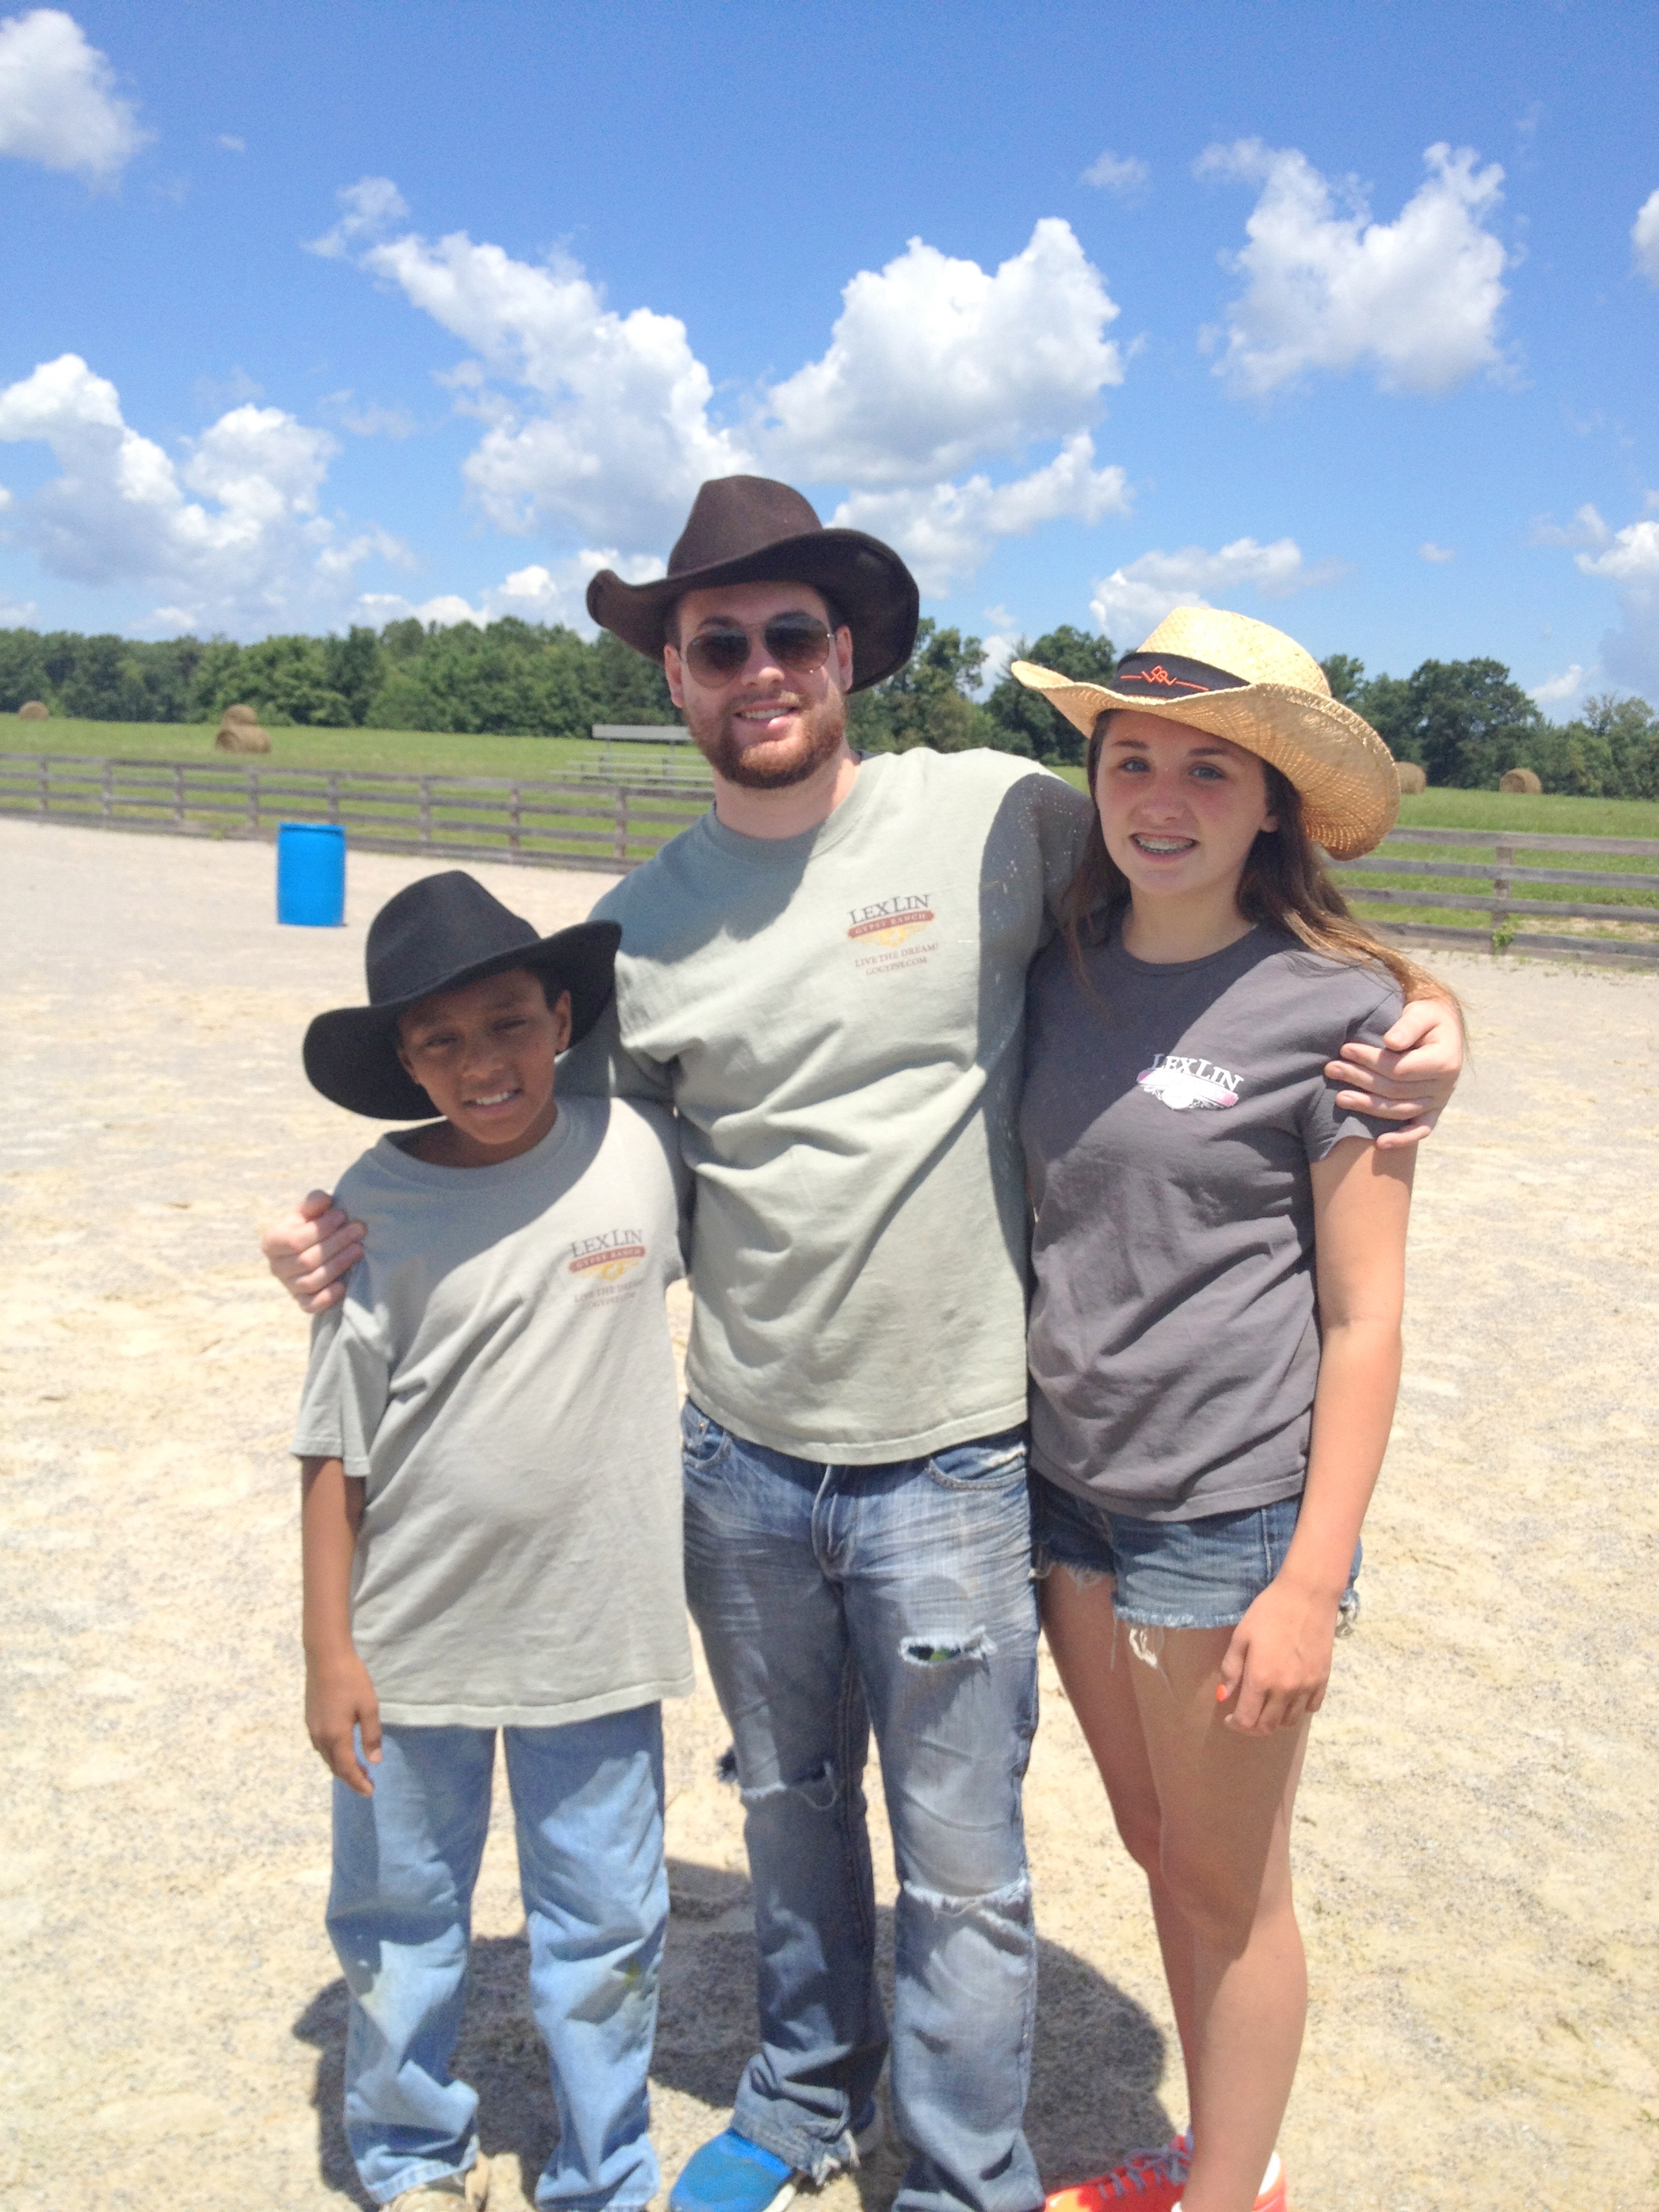 Ben, from left, Cody and Lindie, three of Eric and Mechelle Barton's children, pose for a photo at LexLin Gypsy Ranch.